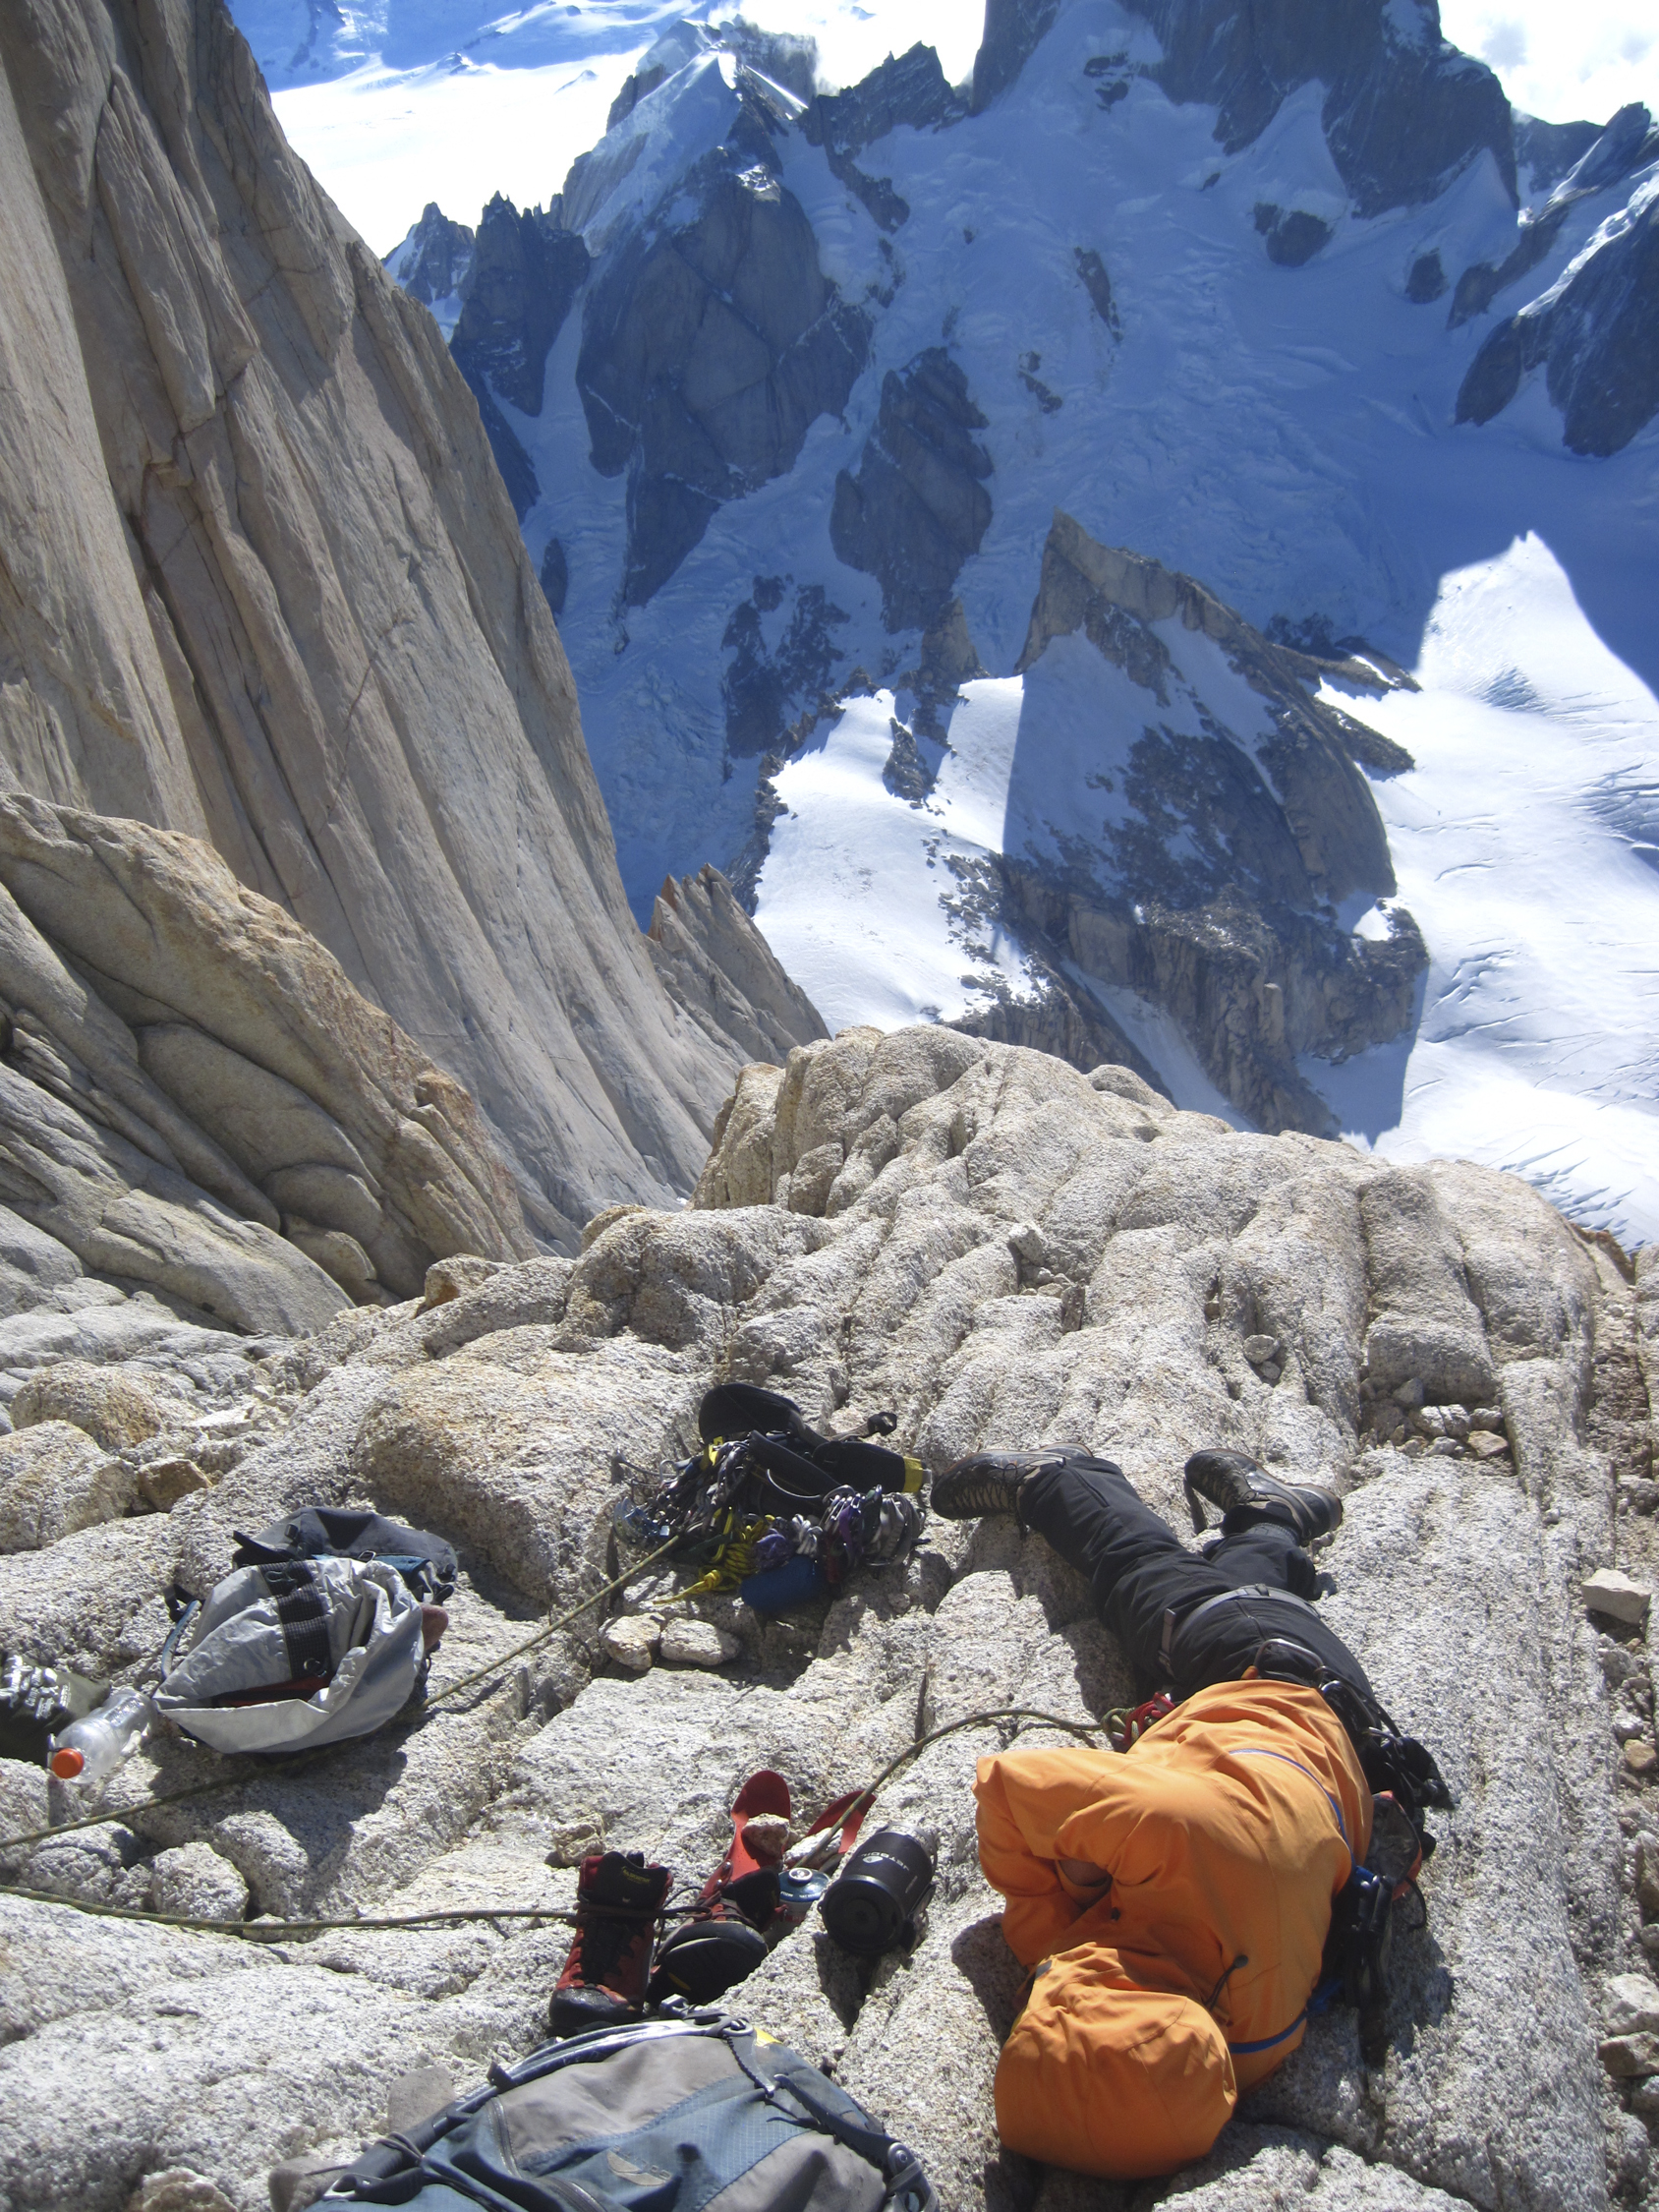 Josh Huckaby catches a little catnap on the three-star ledge high on the North Pillar on Fitz Roy in 2012. He writes, We arrived here too early to actually bivy, because it was still sunny and warm. Plus neither Troutman nor I had a sleeping bag to curl up in together. [Photo] Josh Huckaby Collection